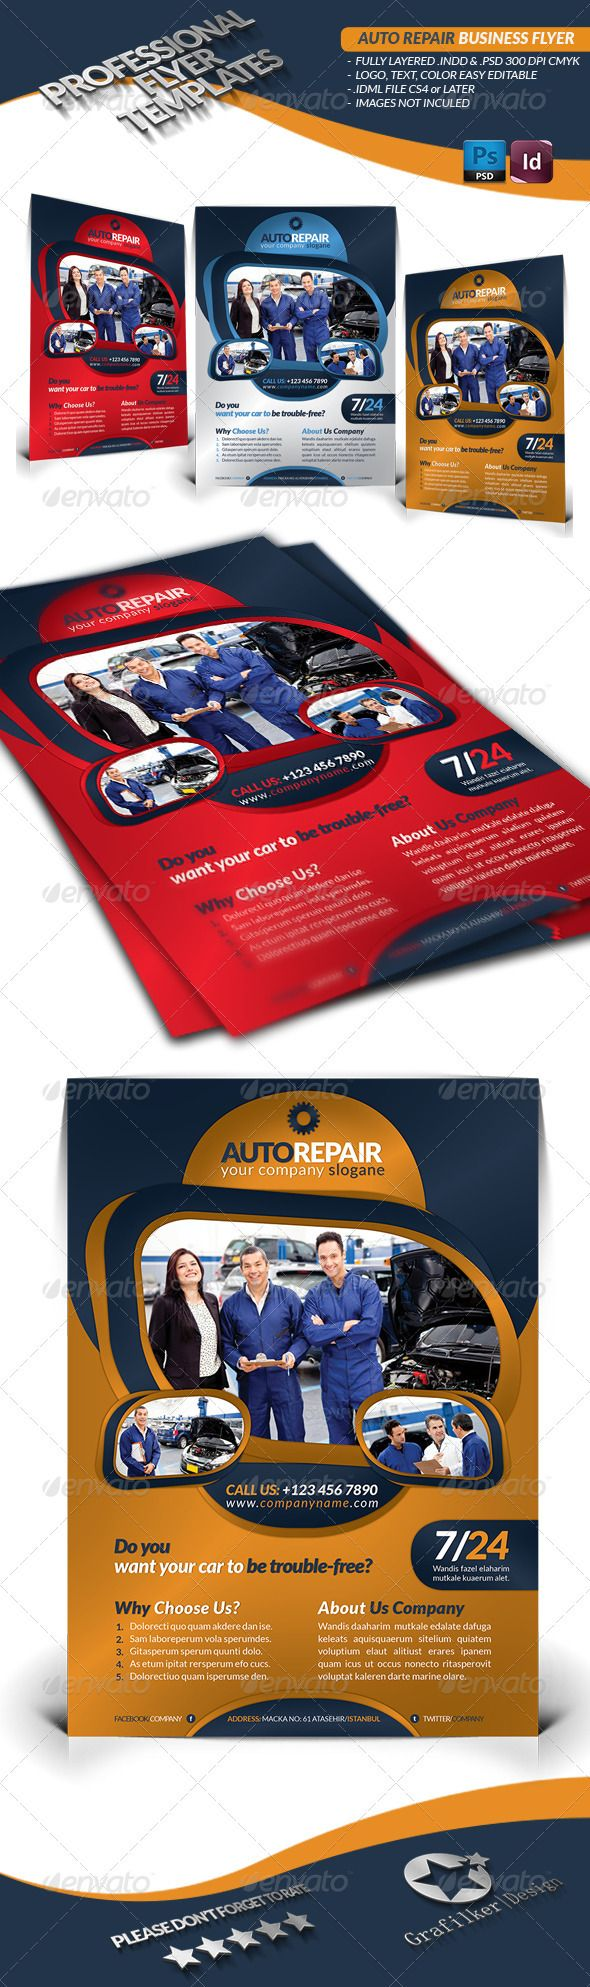 Auto Repair Business Flyer #GraphicRiver Auto Repair Business Flyer Fully layered INDD Fully layered PSD 300 Dpi, CMYK IDML format open Indesign CS4 or later Completely editable, print ready Text/Font or Color can be altered as needed All Image are in vector format, so can customise easily Photos are not included in the file Help.txt fonts in the file Help.txt file Created: 27November12 GraphicsFilesIncluded: PhotoshopPSD #InDesignINDD Layered: Yes MinimumAdobeCSVe...